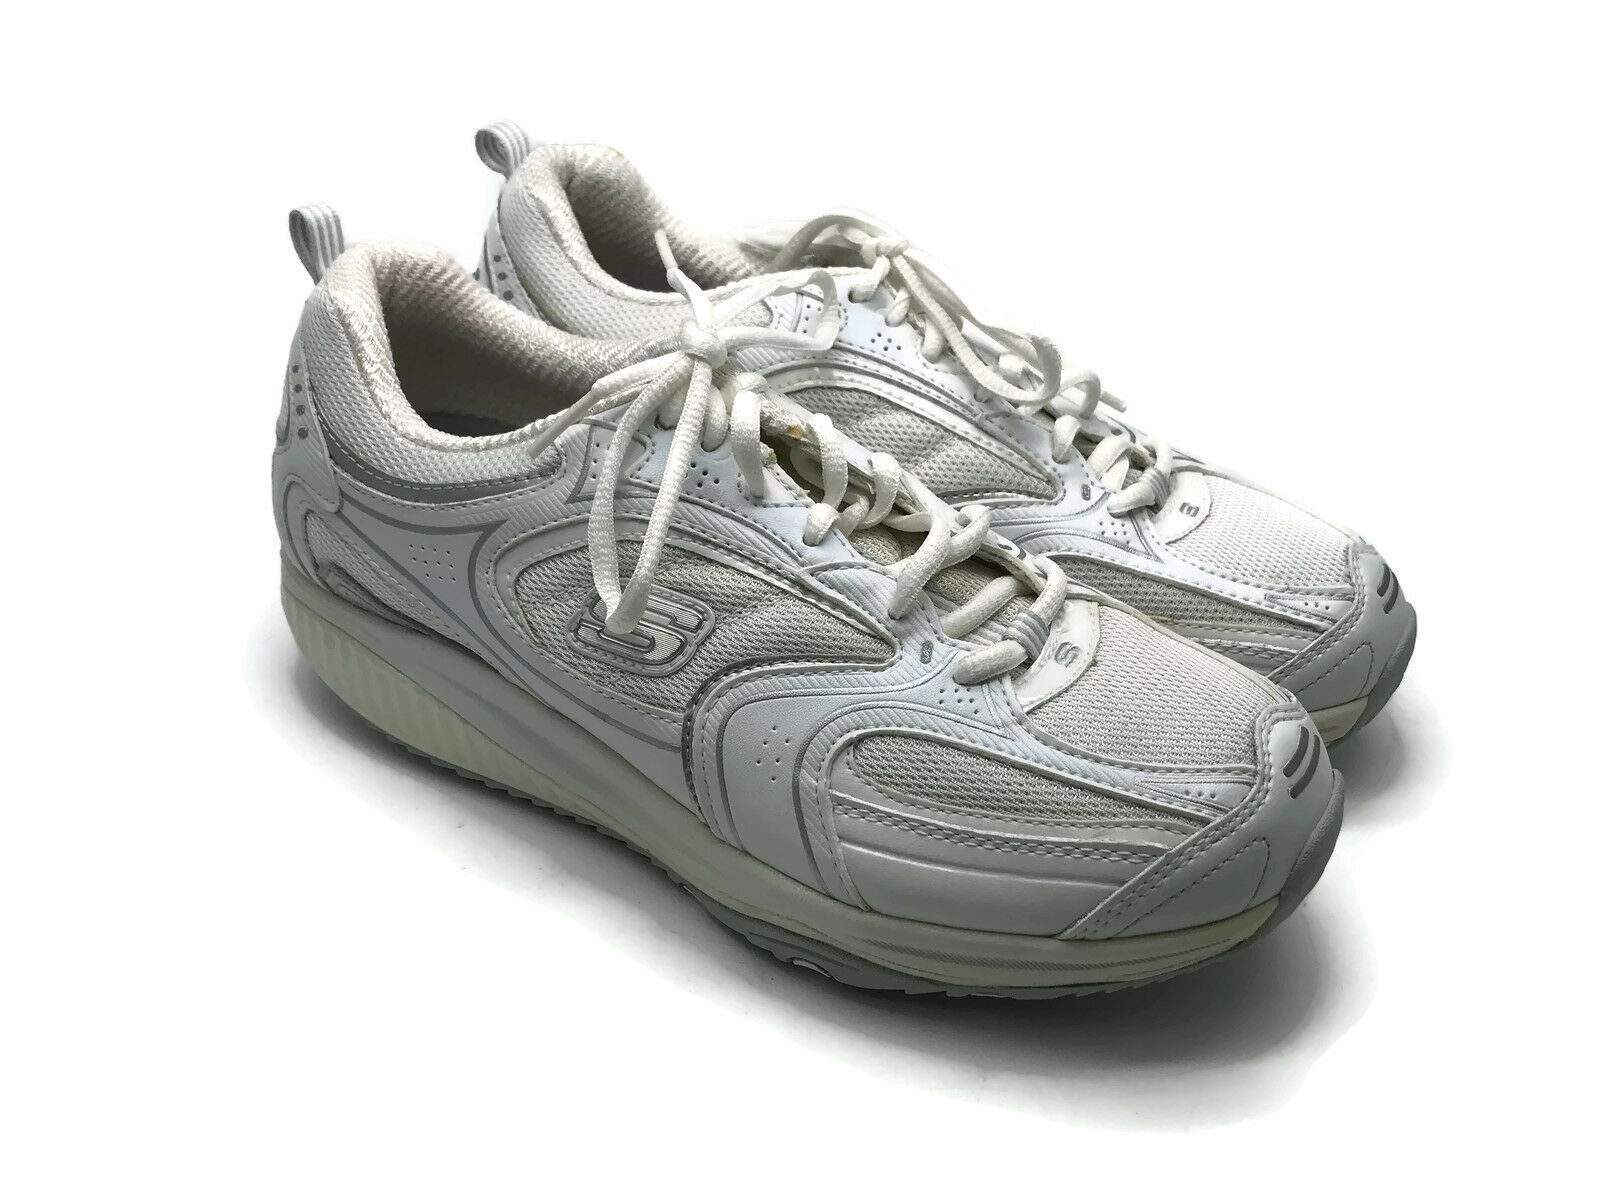 f751a5f95e8c Skechers Women s Shape Ups-Strength Fitness and 22 similar items. 57